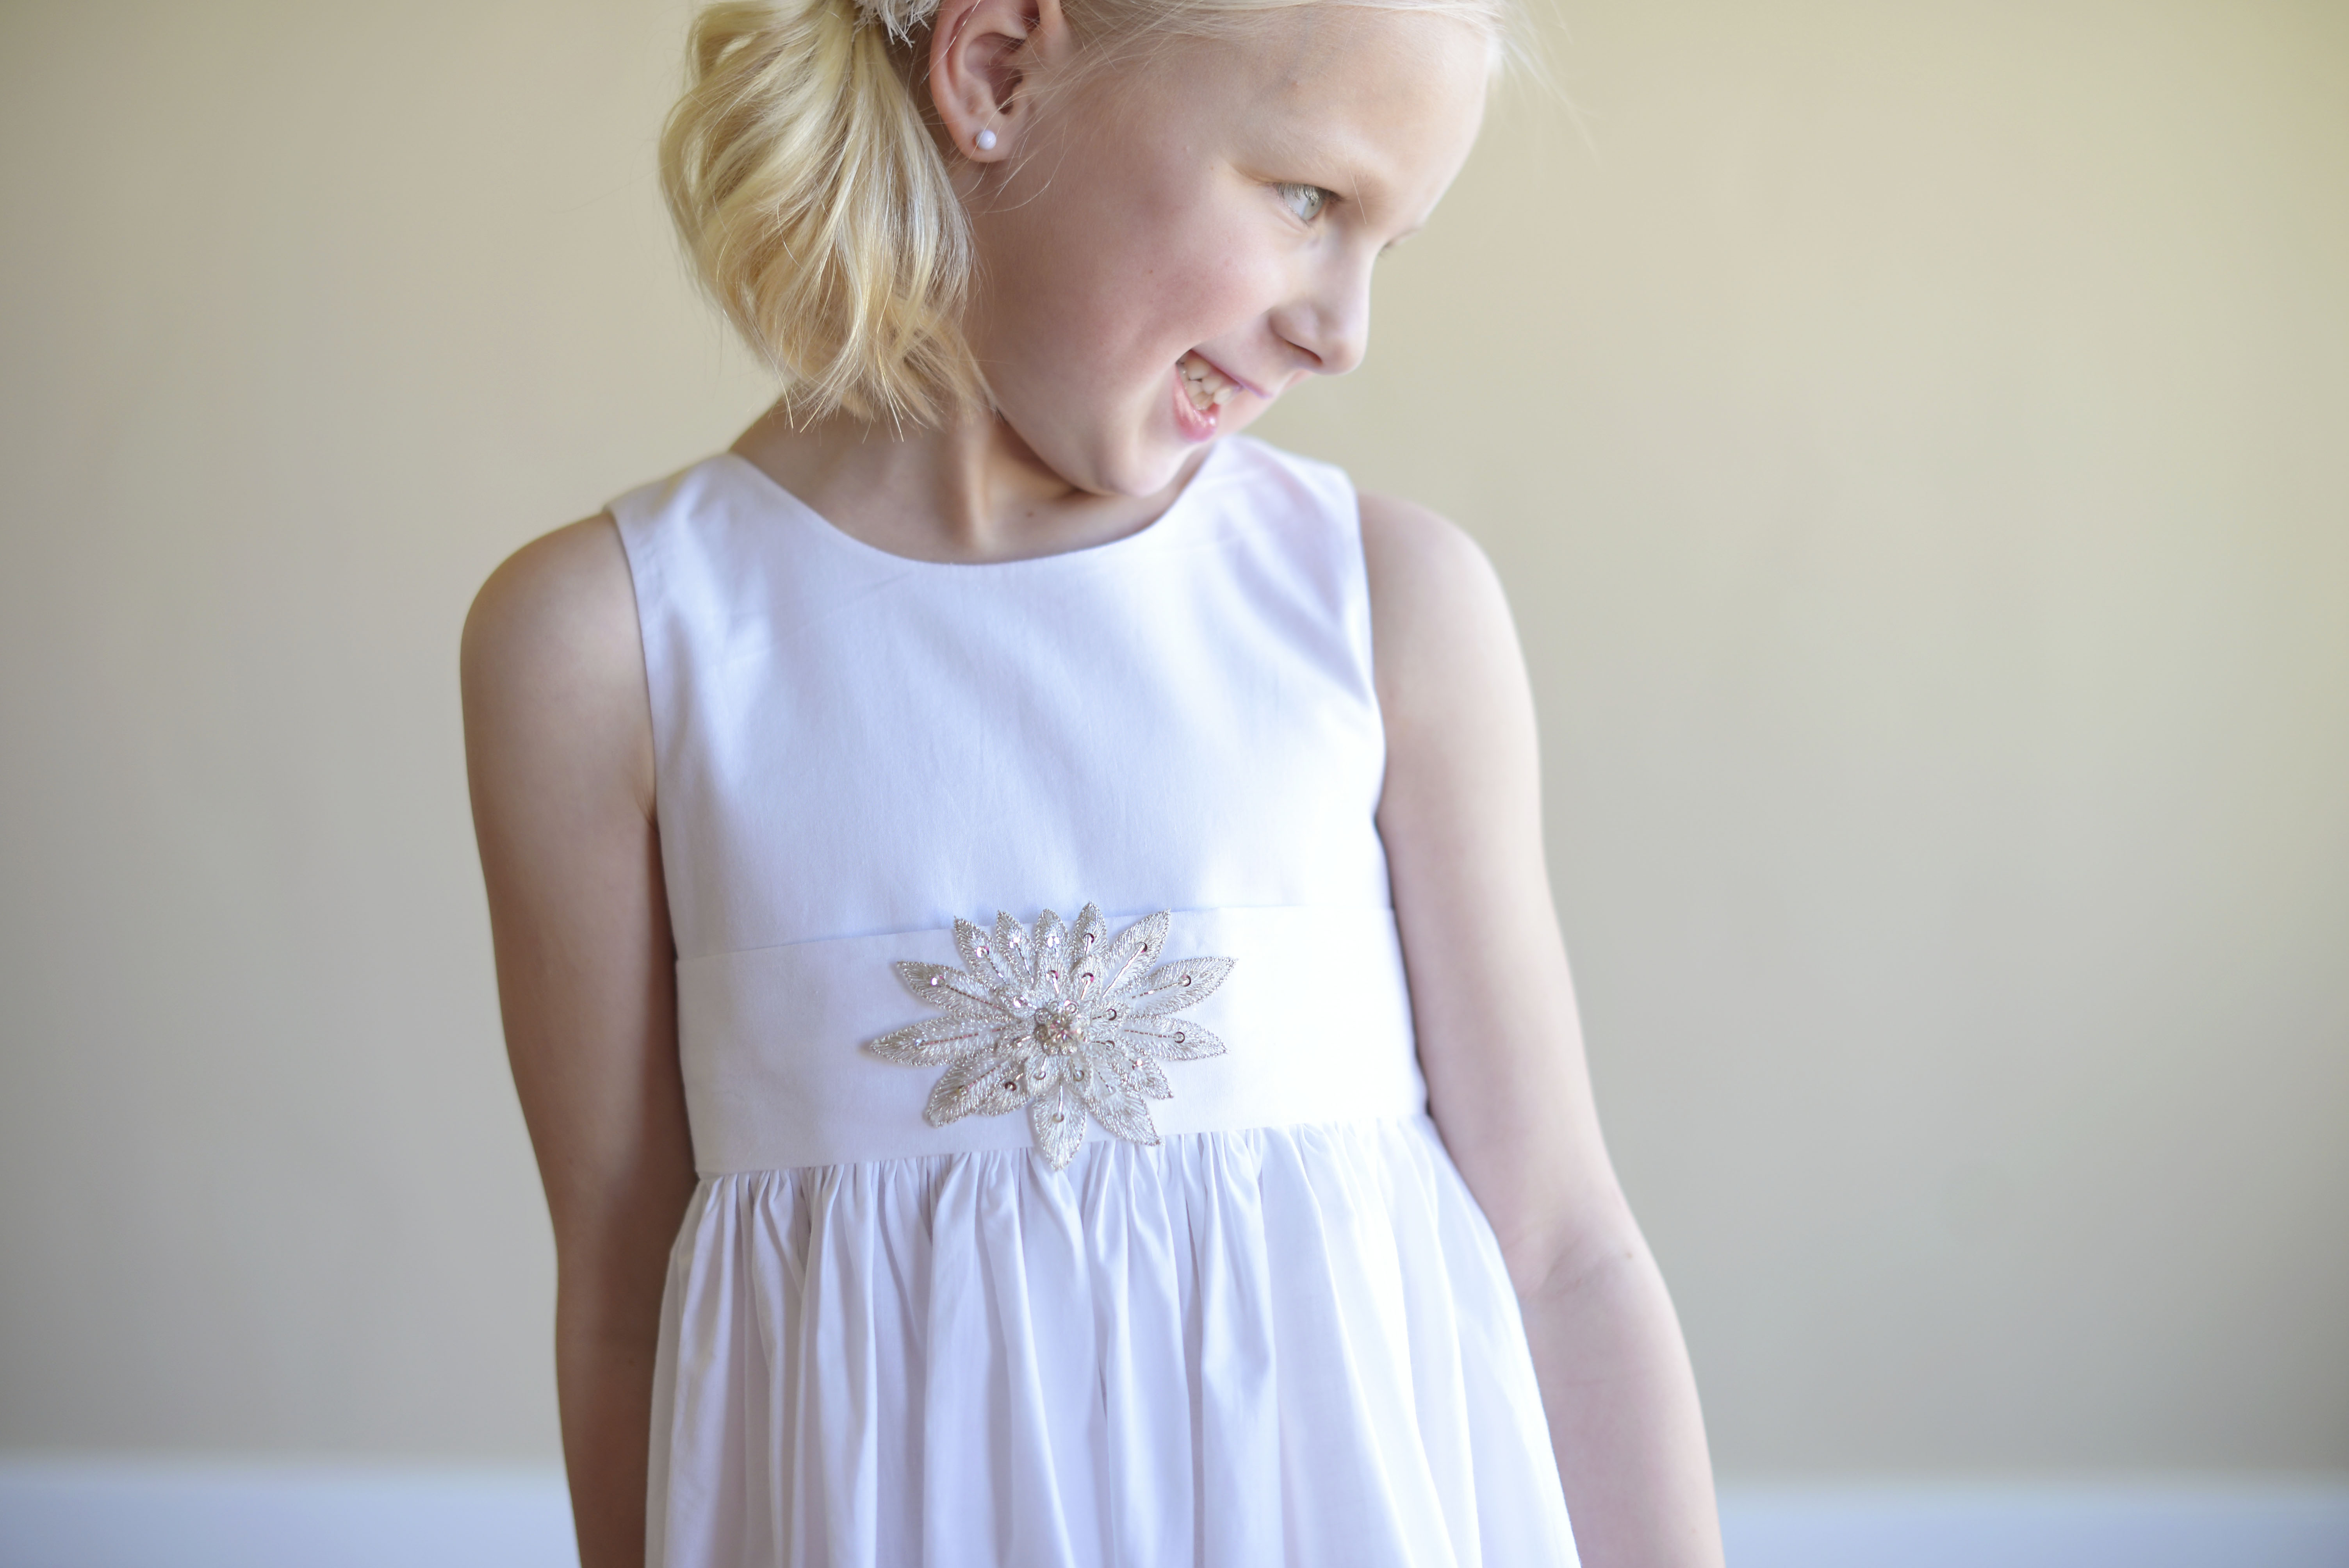 Adorable flower girl dresses and first communion dresses made in the uk the summer flower girl dress is a white or ivory cotton first communion dress in cotton with a diamant star motif mightylinksfo